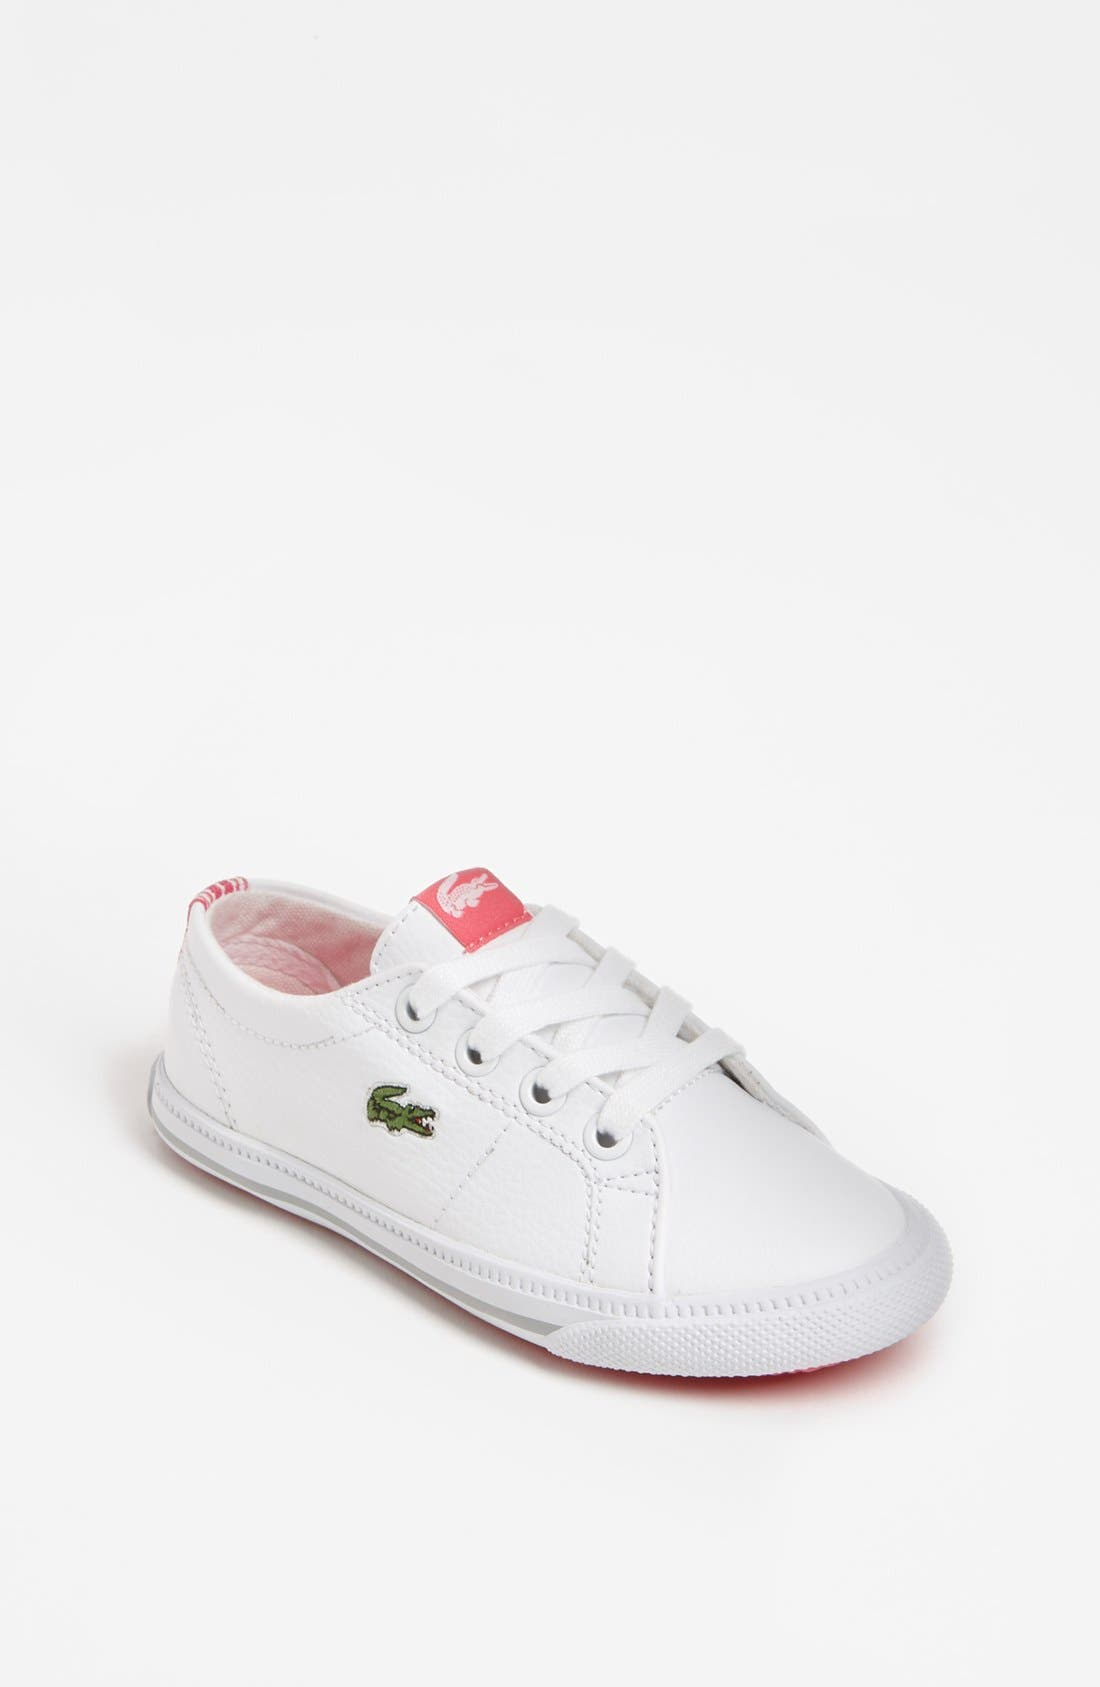 Main Image - Lacoste 'Marcel' Sneaker (Toddler)